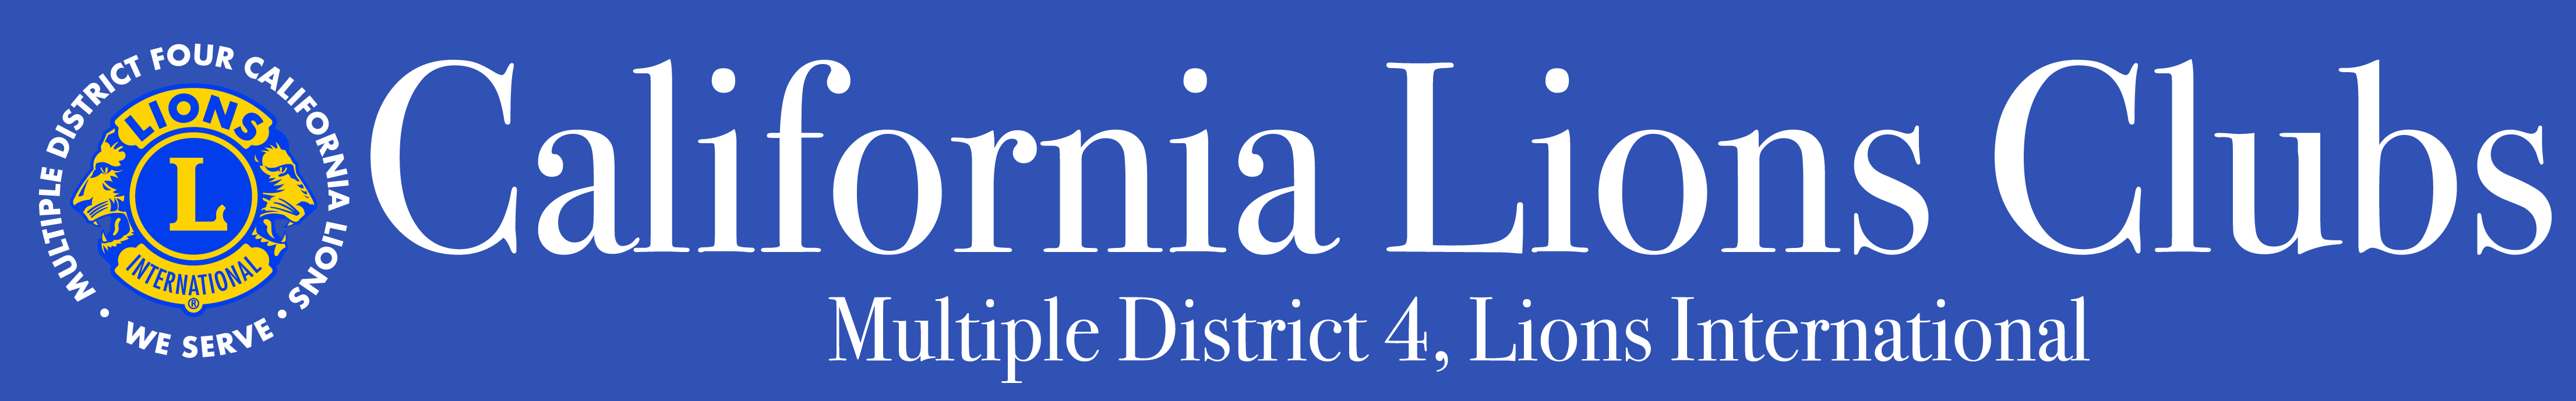 Multiple District 4 California Lions